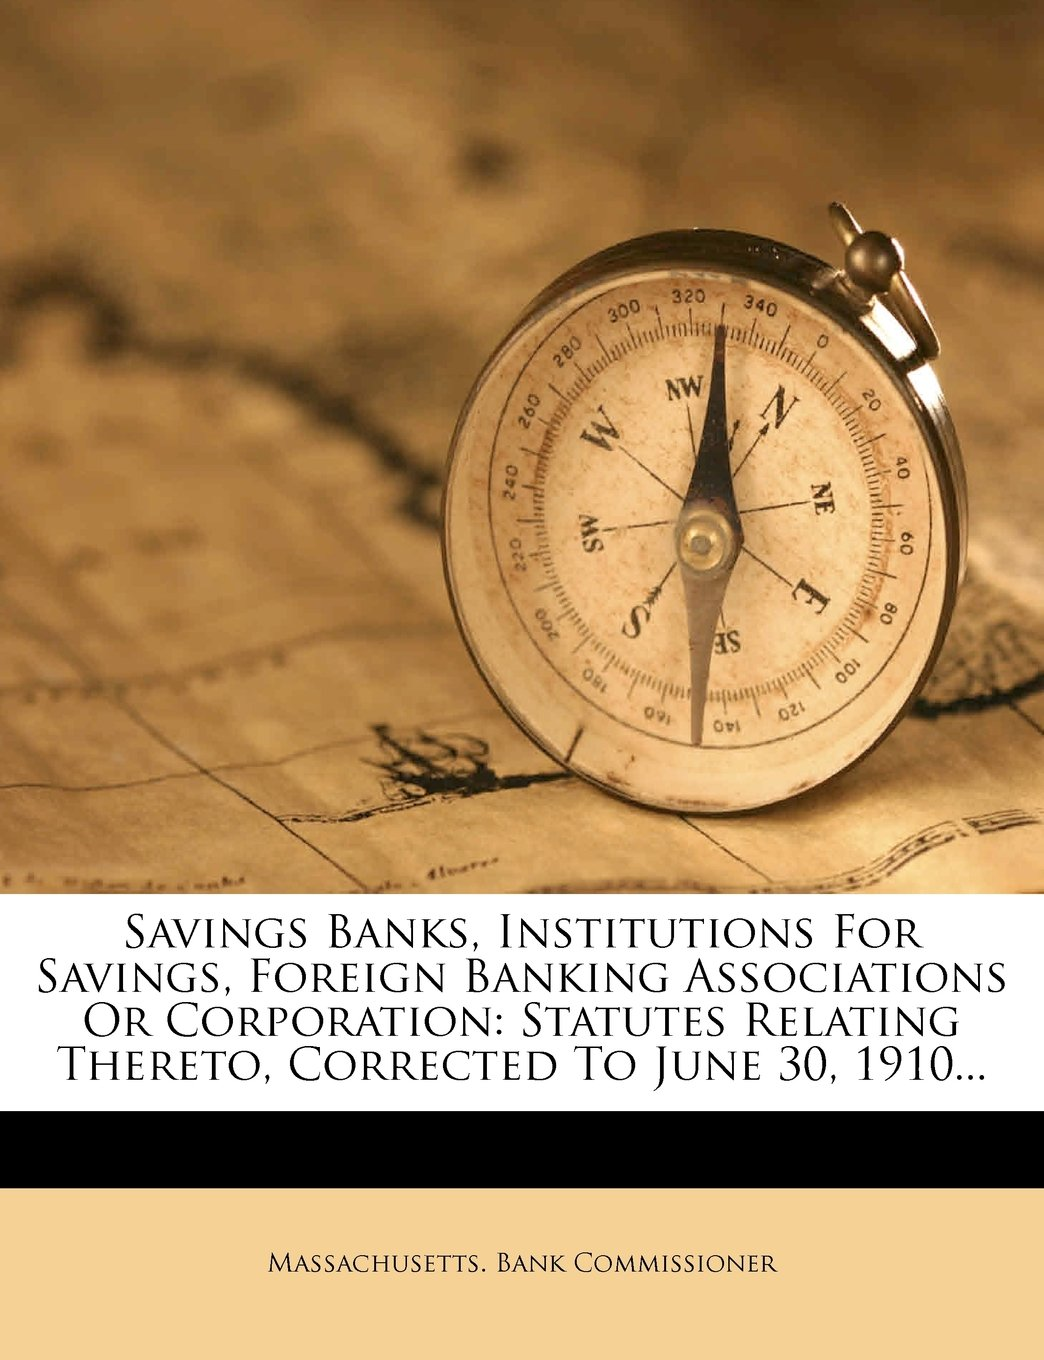 Download Savings Banks, Institutions For Savings, Foreign Banking Associations Or Corporation: Statutes Relating Thereto, Corrected To June 30, 1910... ebook